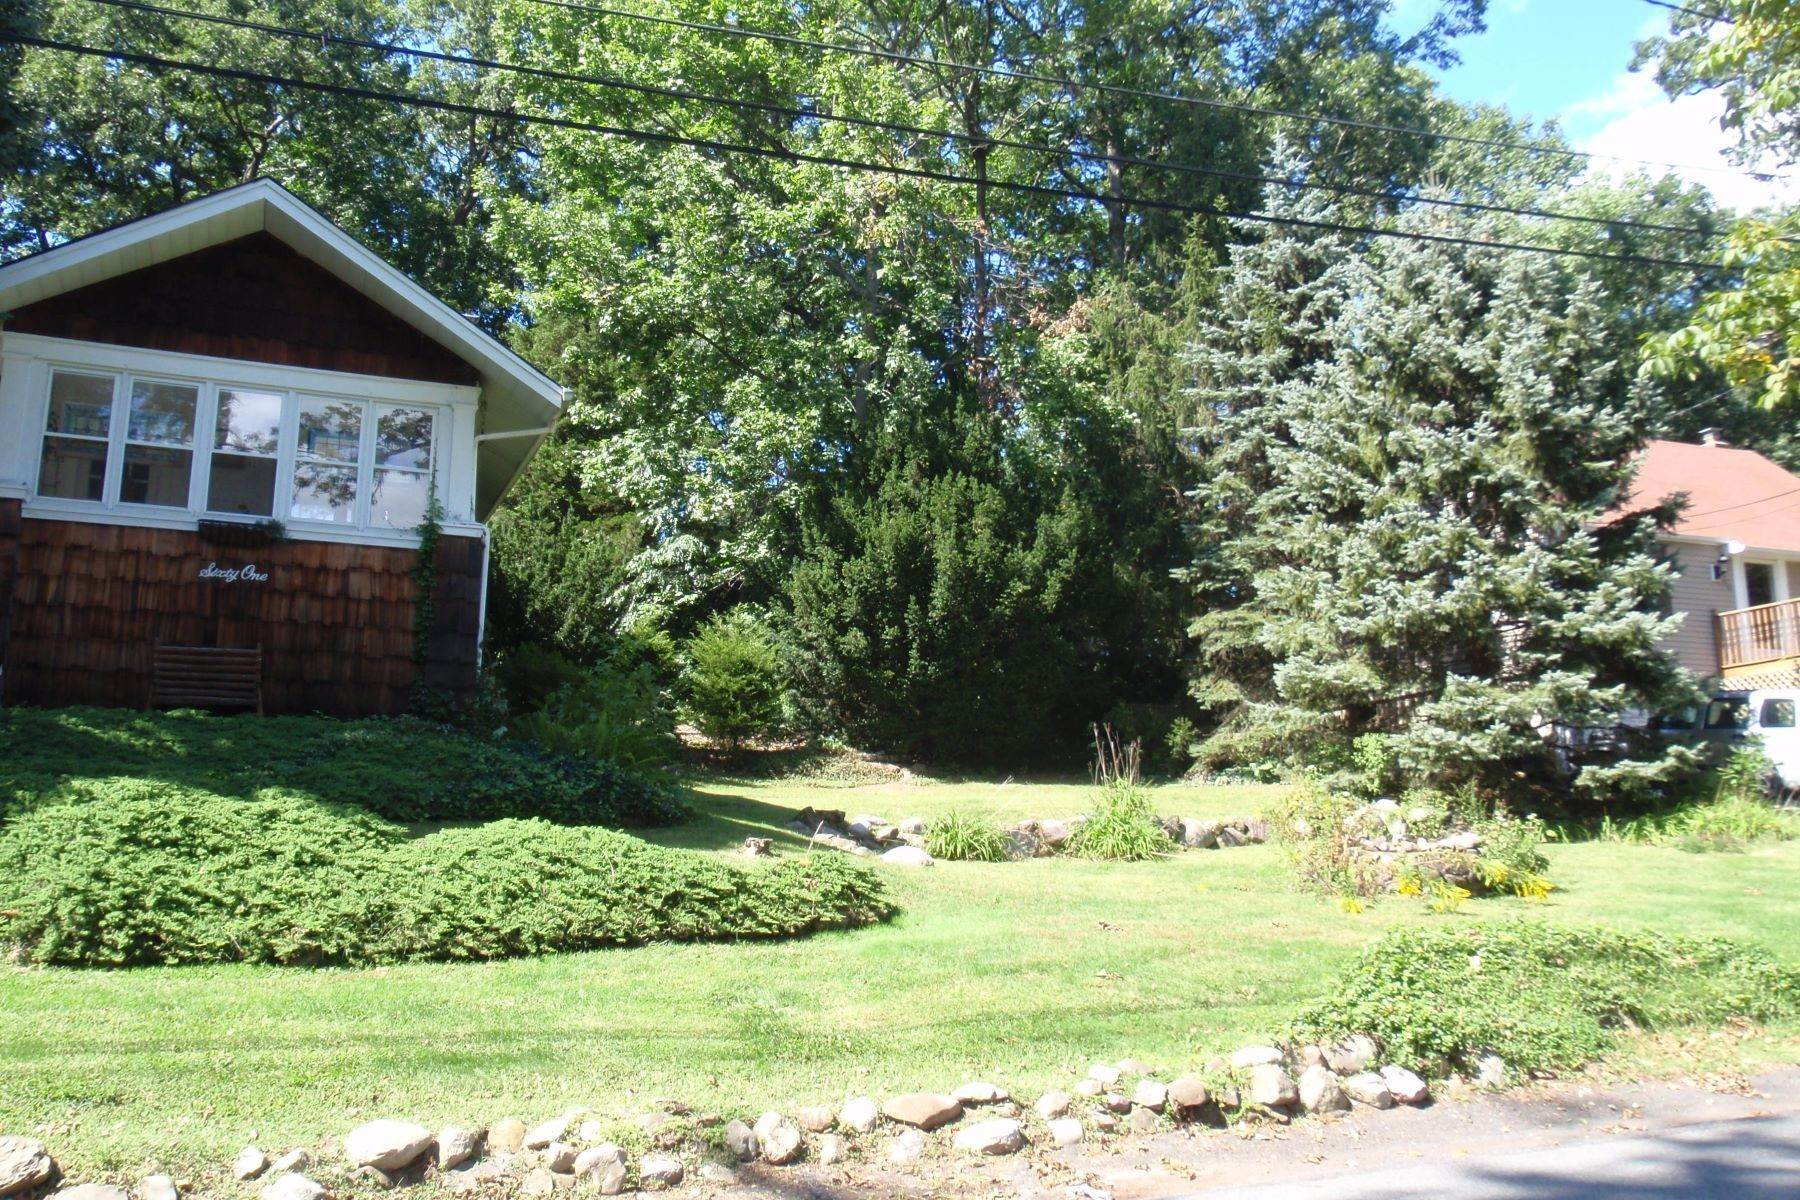 Land for Sale at 61 Oakwood Drive Wayne NJ 07470 61 Oakwood Drive Wayne, New Jersey 07470 United States